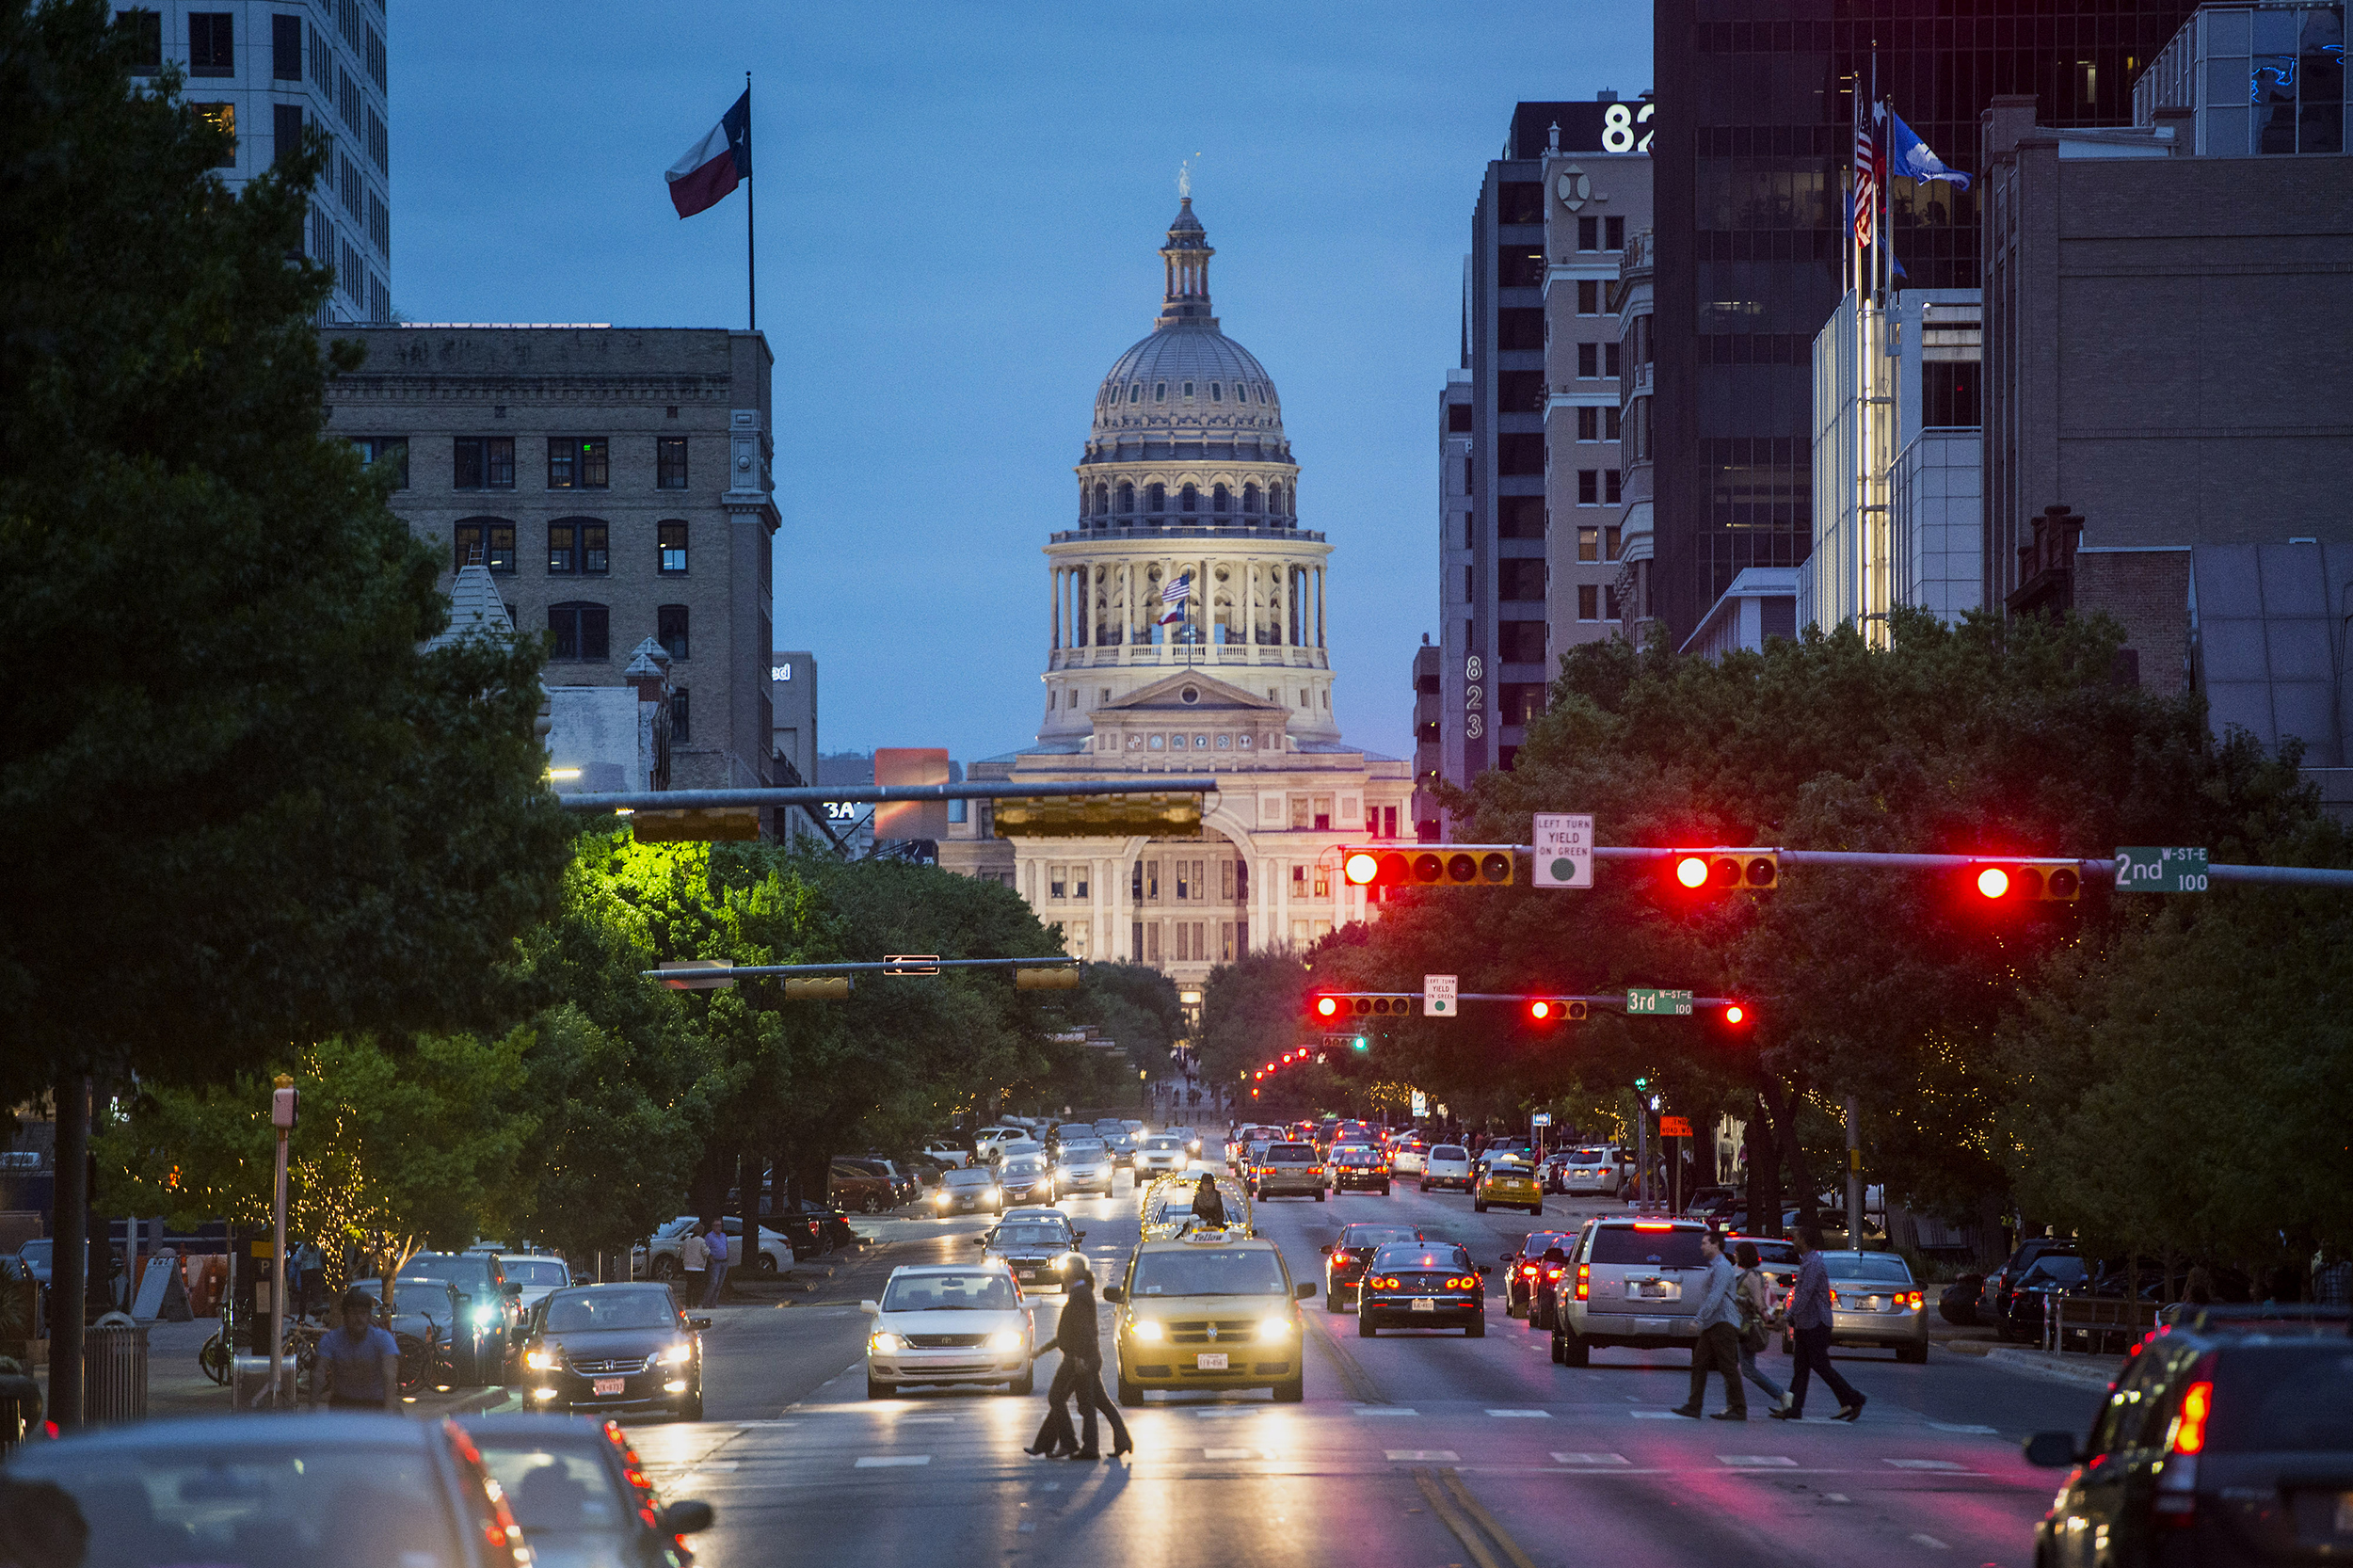 Civil warrants served at Texas Democrats' statehouse offices, but holdout continues